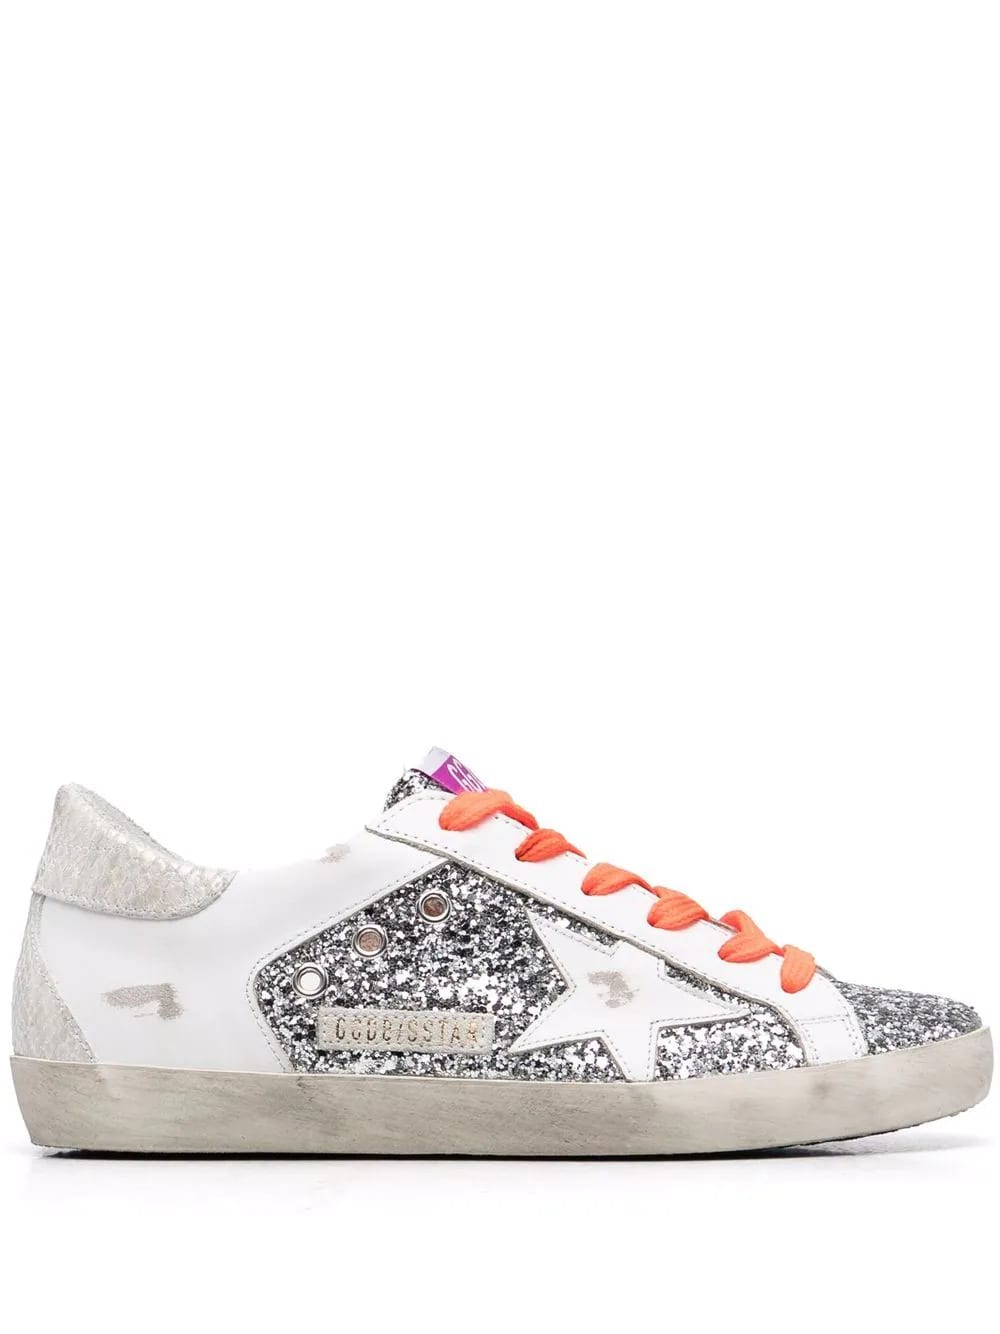 Golden Goose Woman White Leather And Silver Glitter Super-star Sneakers With Fluo Orange Laces